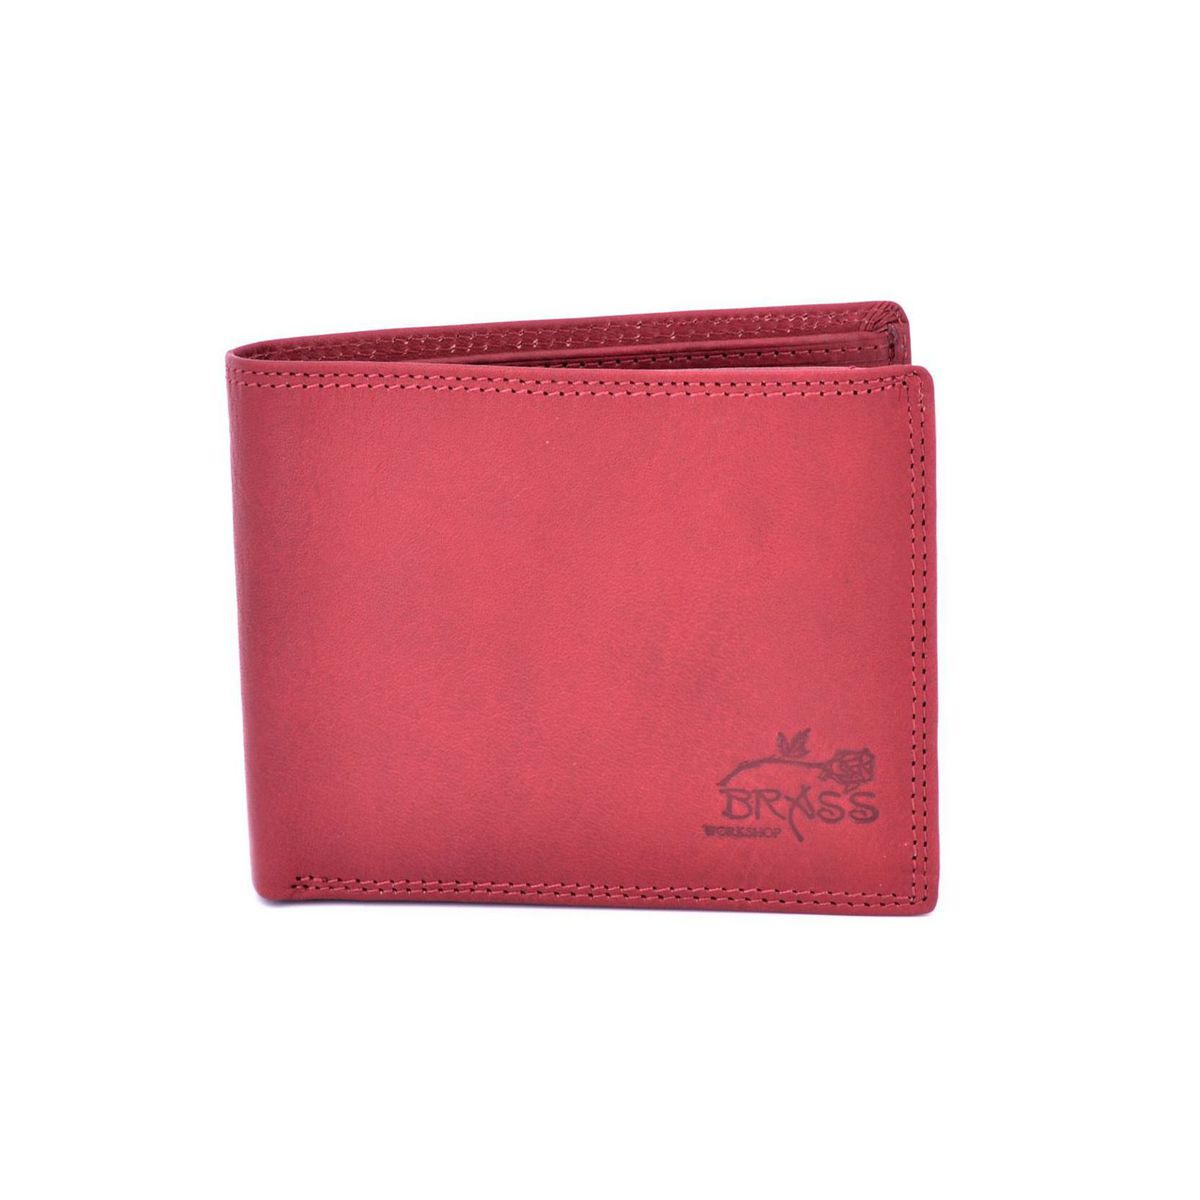 Double stitched leather wallet Red BRASS Workshop